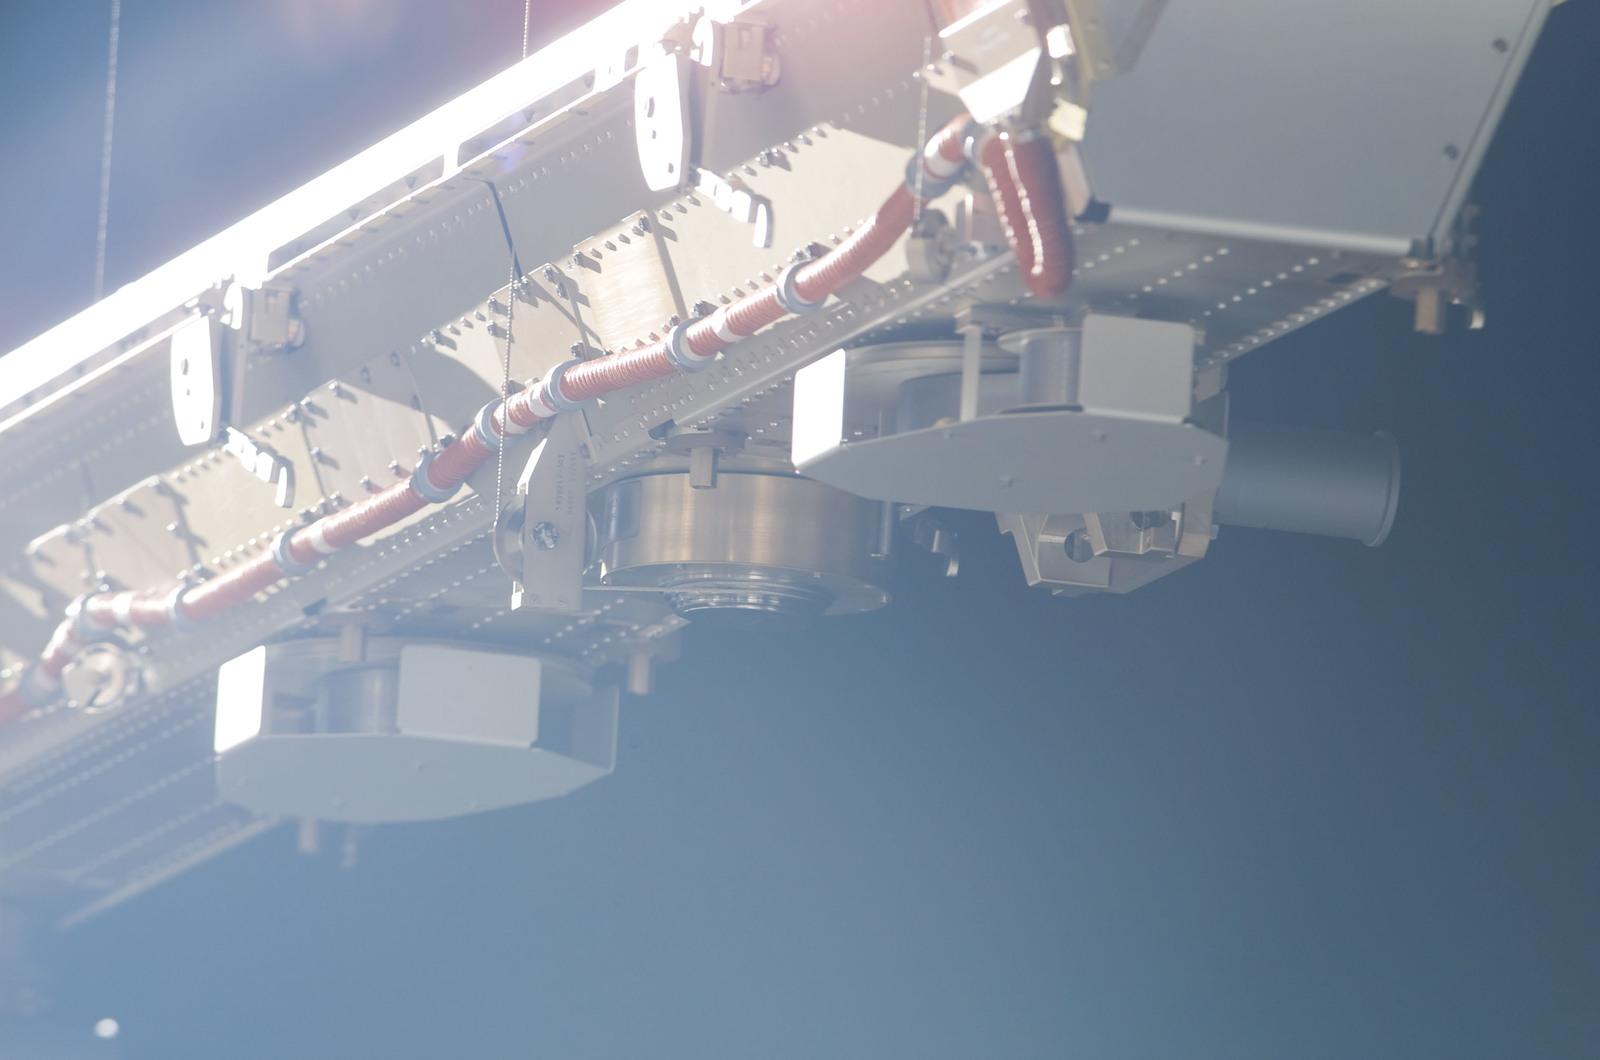 S116E06877 - STS-116 - Backside of the INBD Blanket Boxes on the P6 SAW during EVA 4